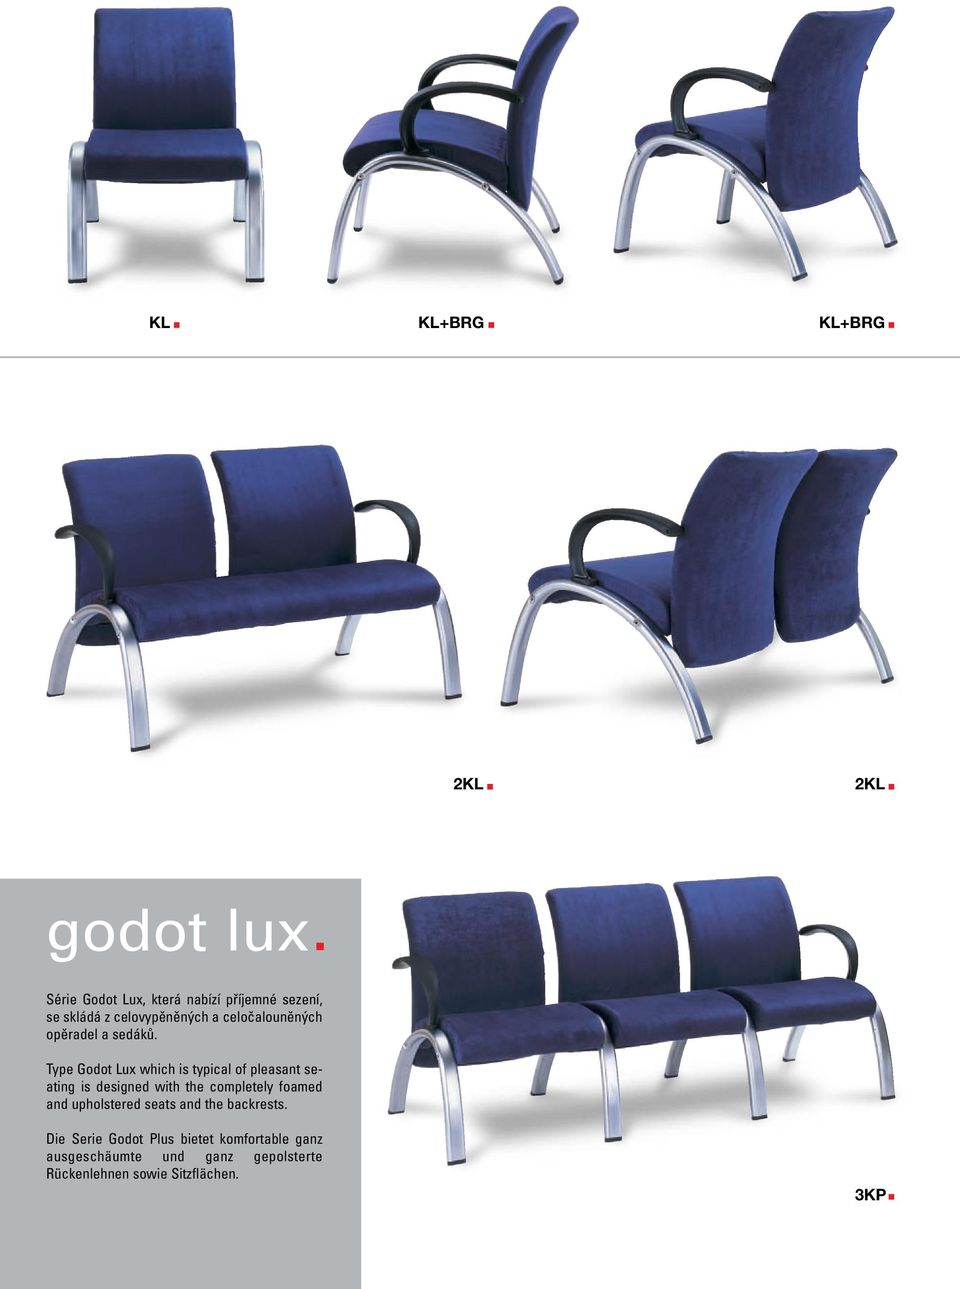 Type Godot Lux which is typical of pleasant seating is designed with the completely foamed and